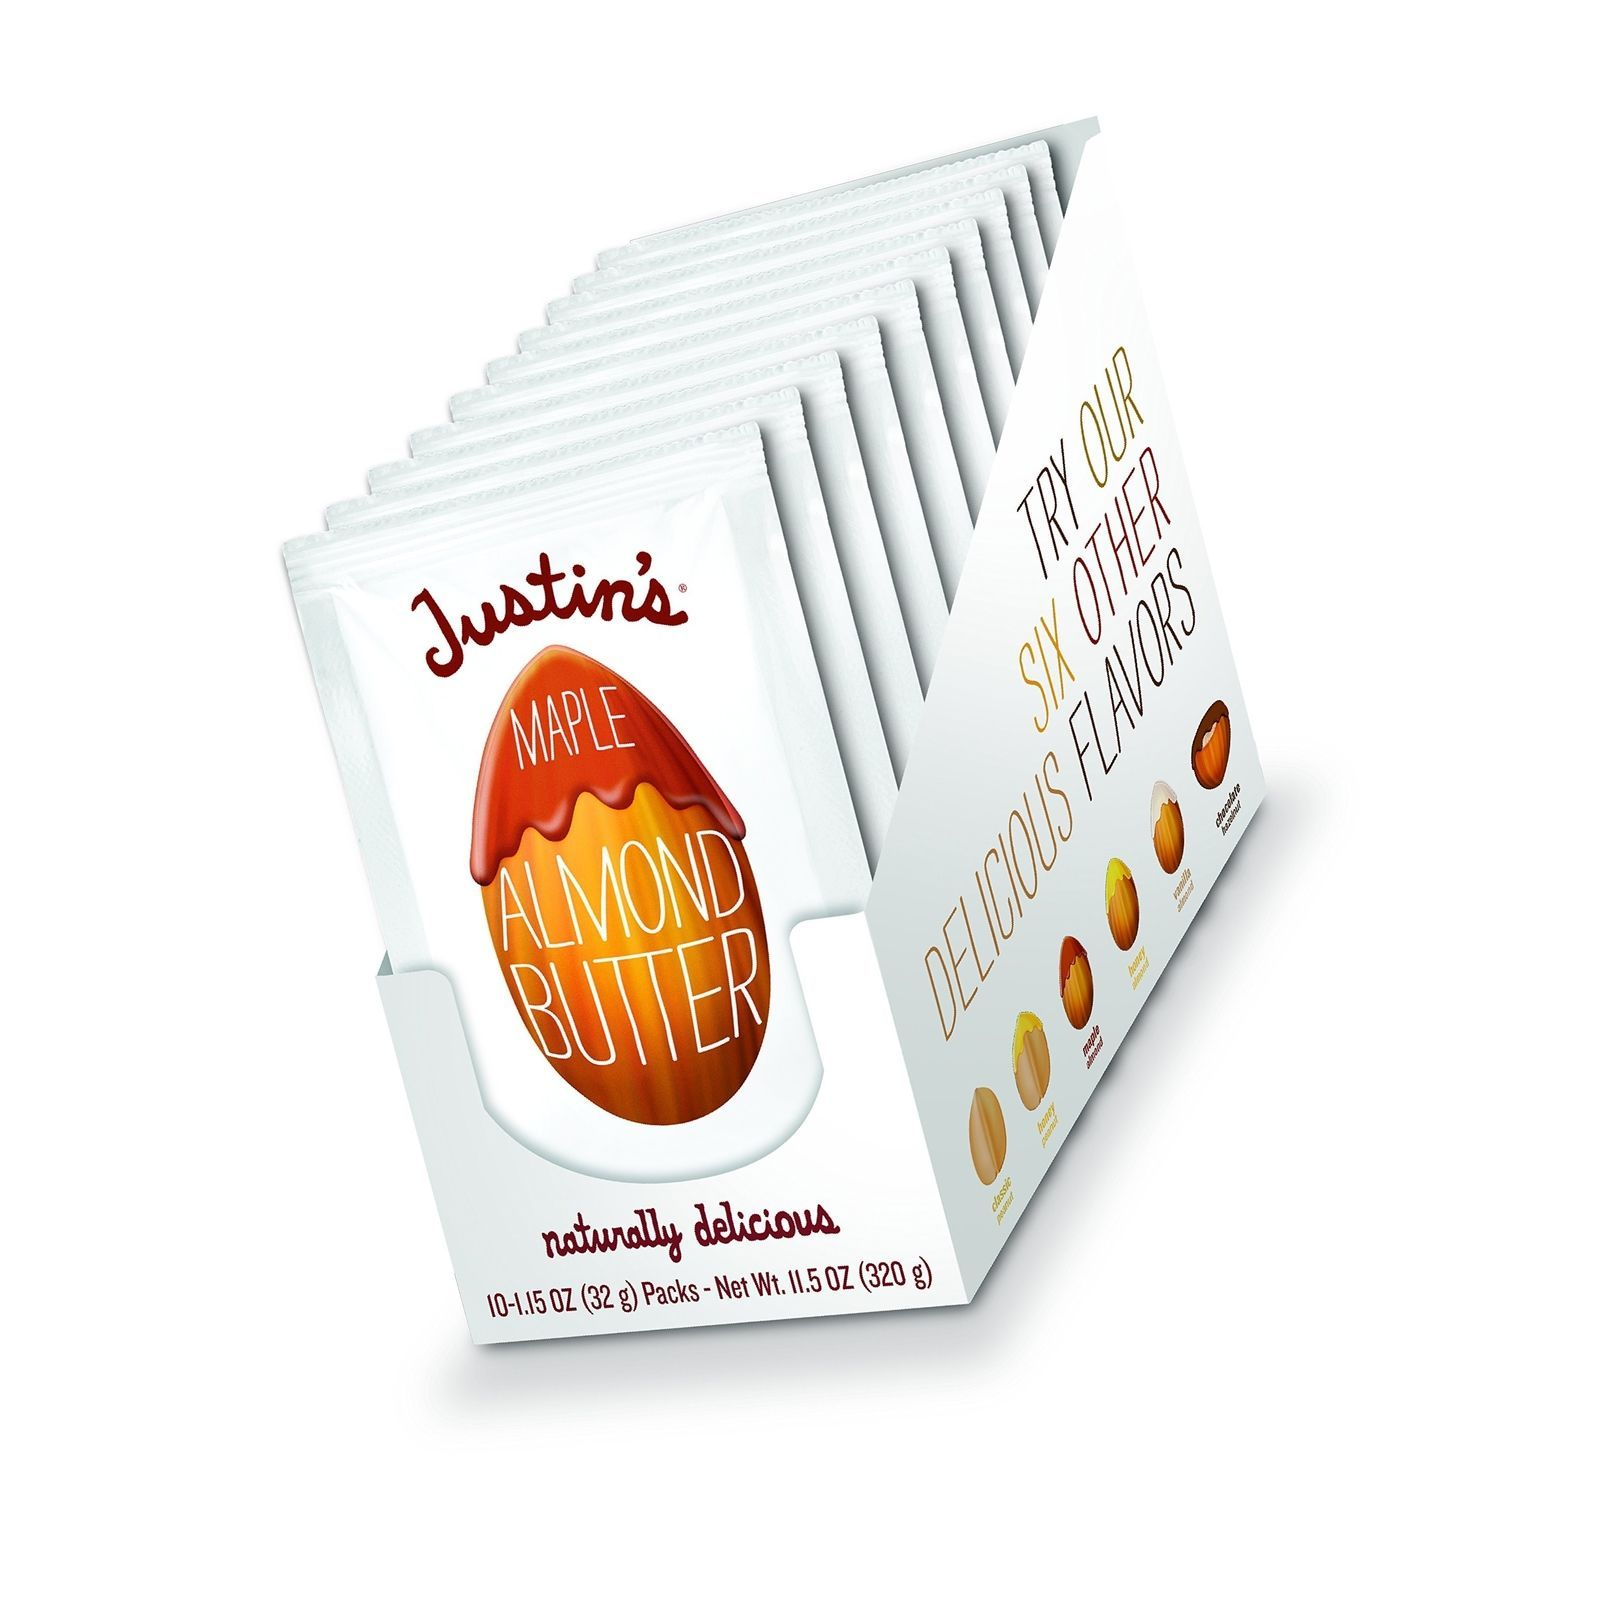 Maple Almond Butter Squeeze Packs by Justin's, Gluten-free, Non-GMO, Responsi...